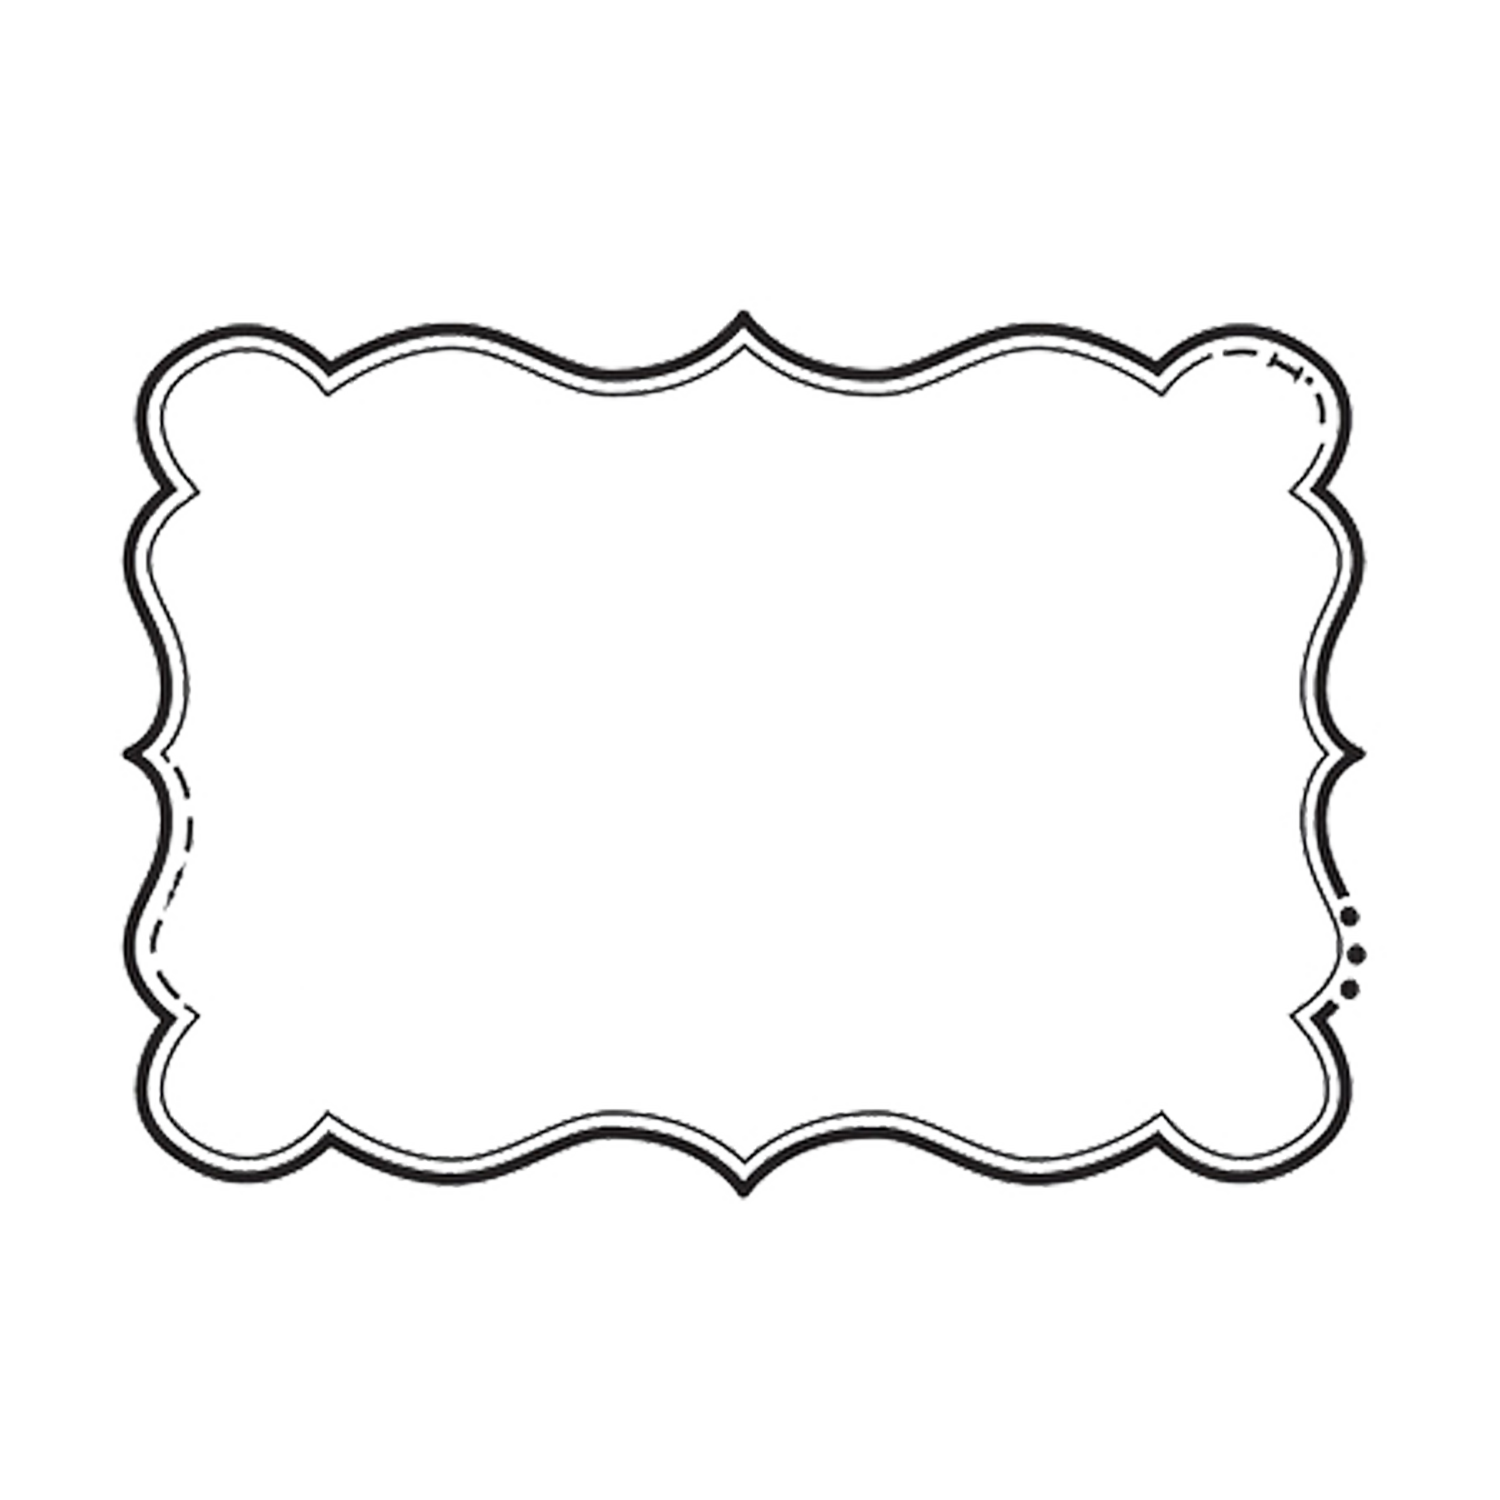 Bracket shape png. A digital scrapbooking embellishment